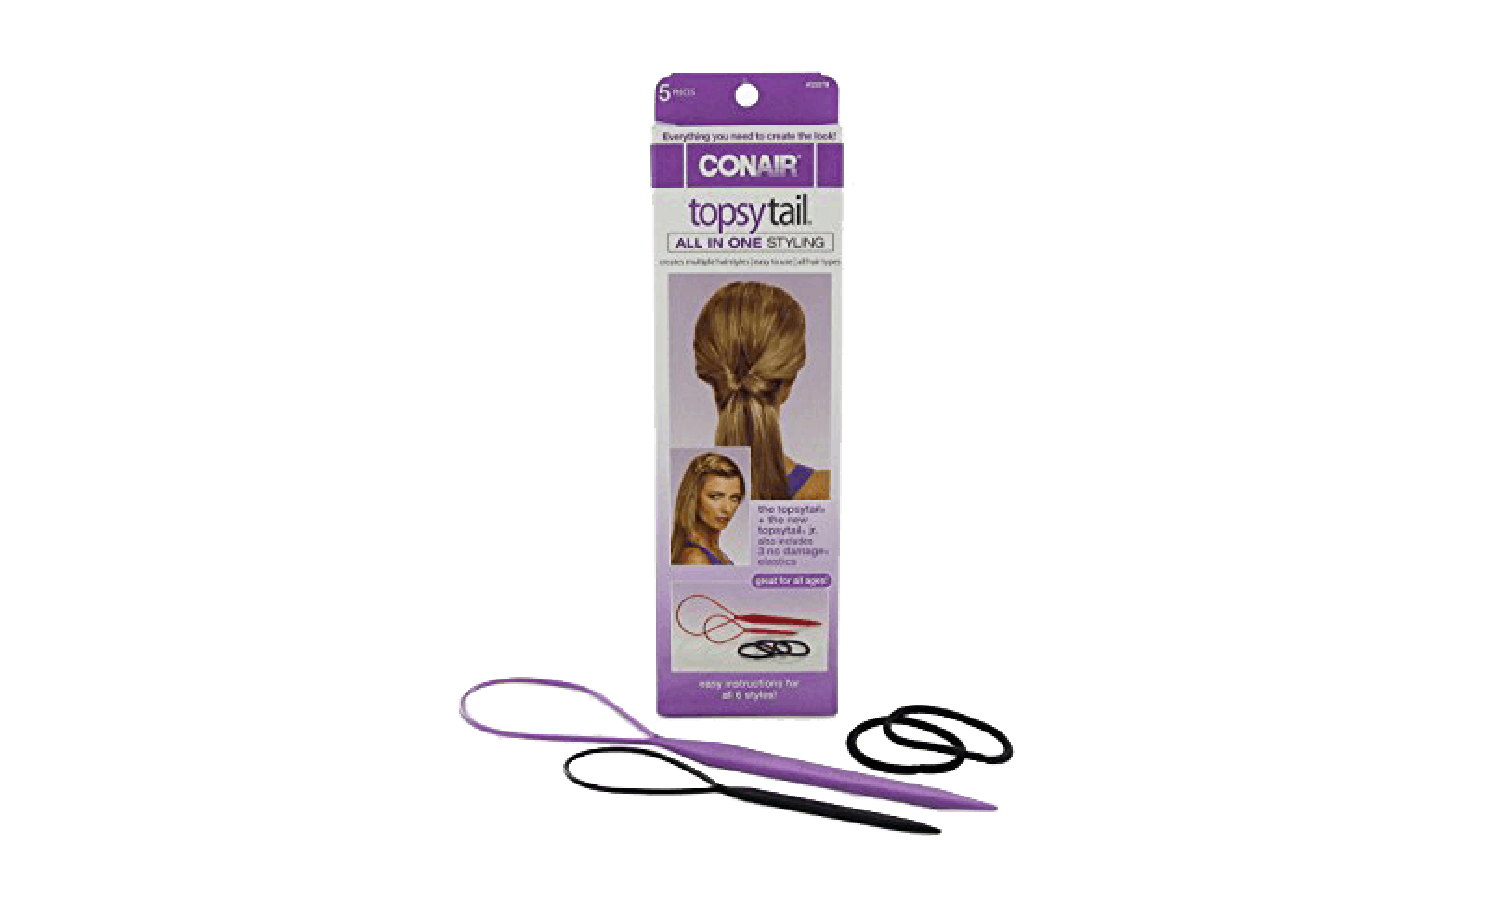 TopsyTail All in One Styling tool and hairbands